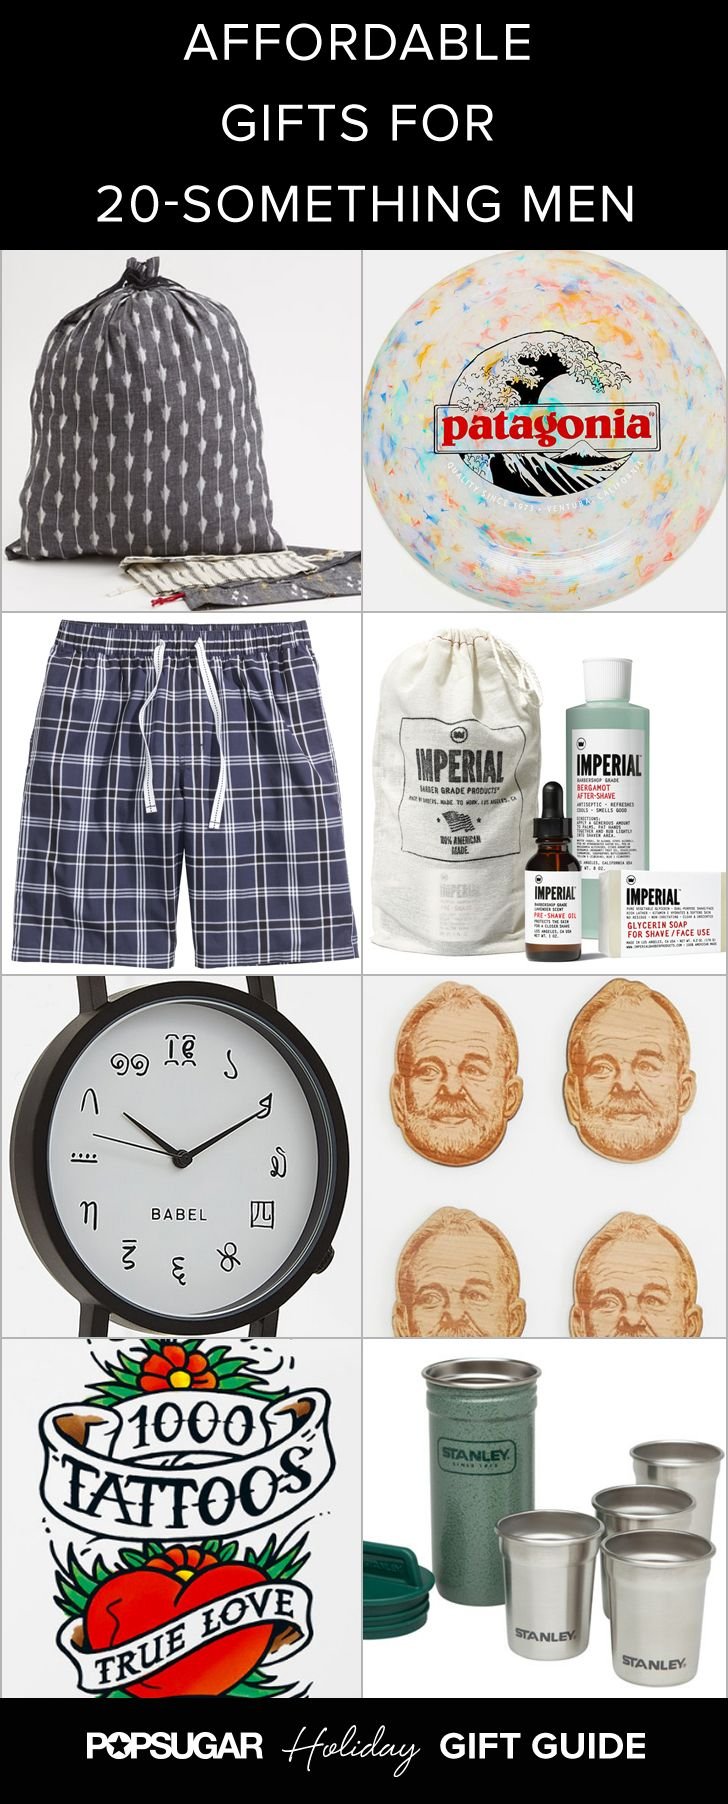 41 Affordable Gifts For Men in Their 20s | Pinterest | Gift, Xmas ...